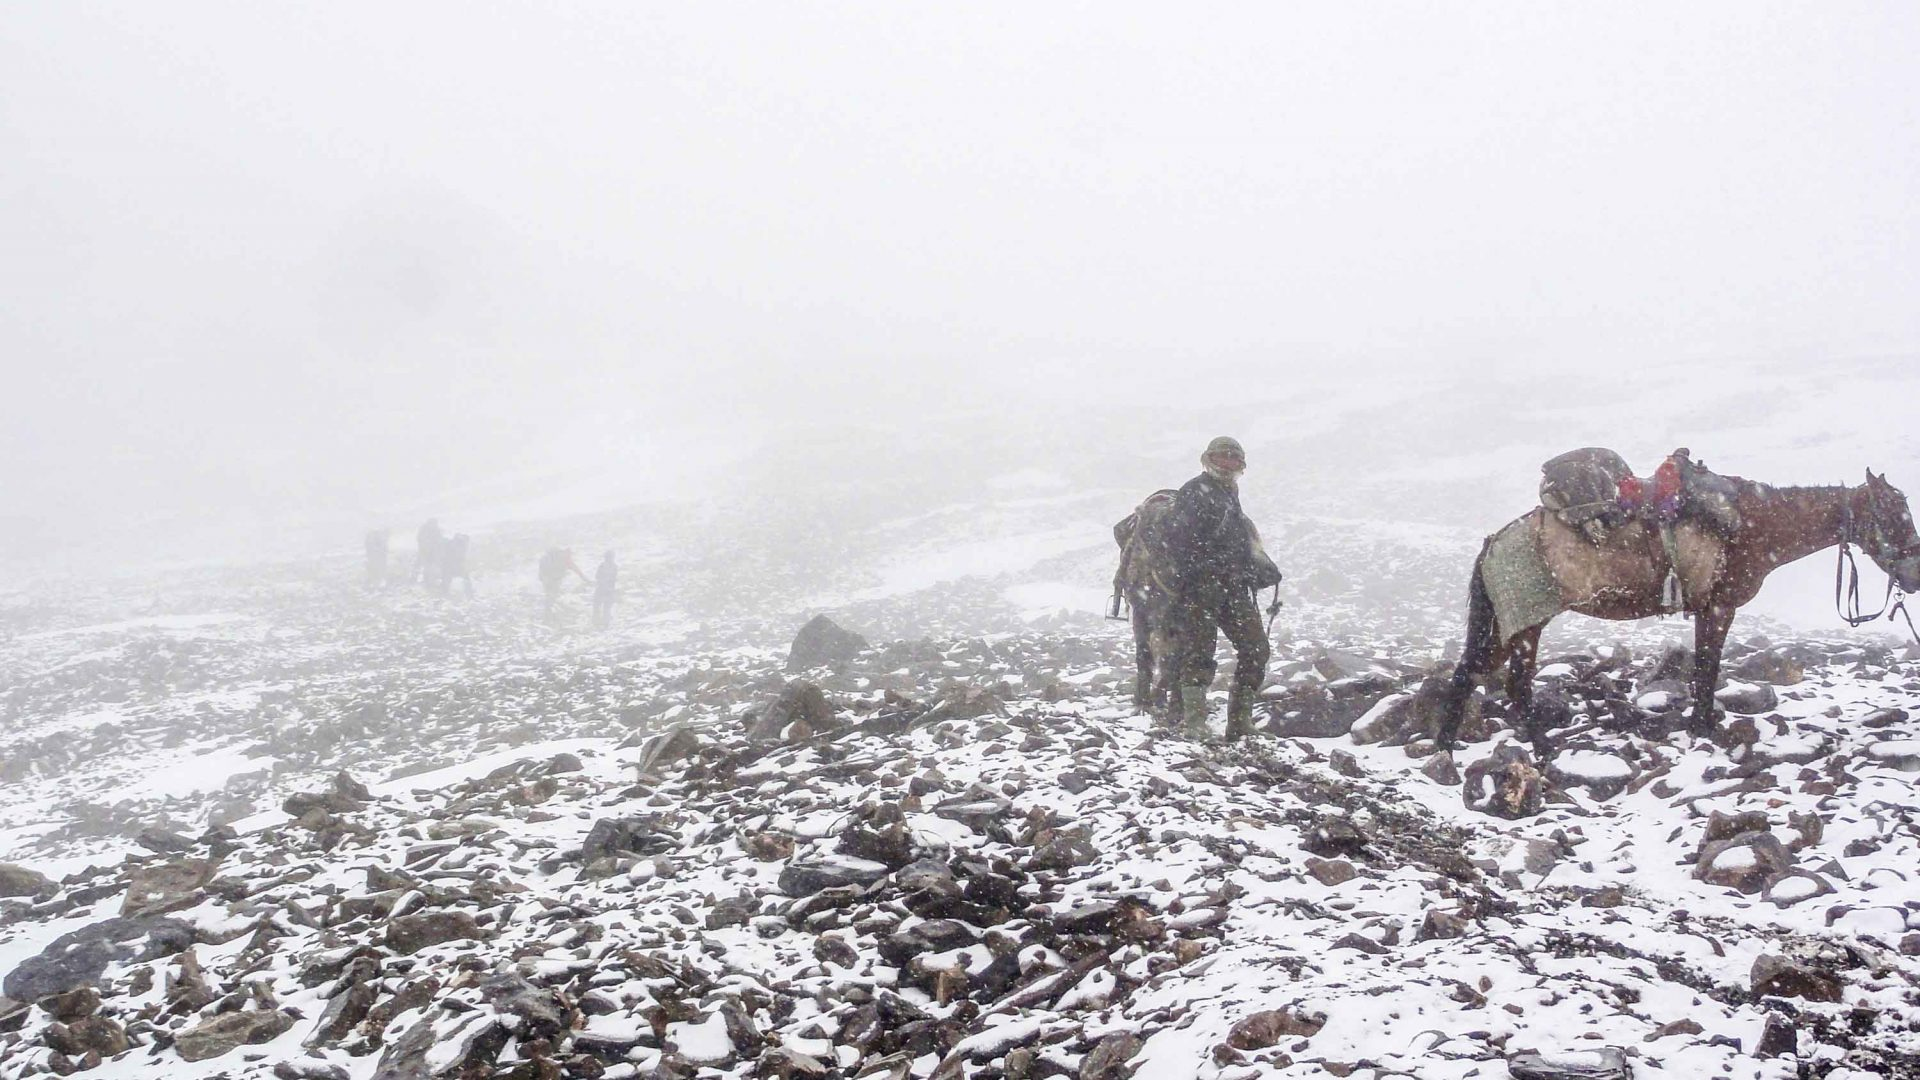 Travelers hike through the snow in the Wakhan, Afghanistan.